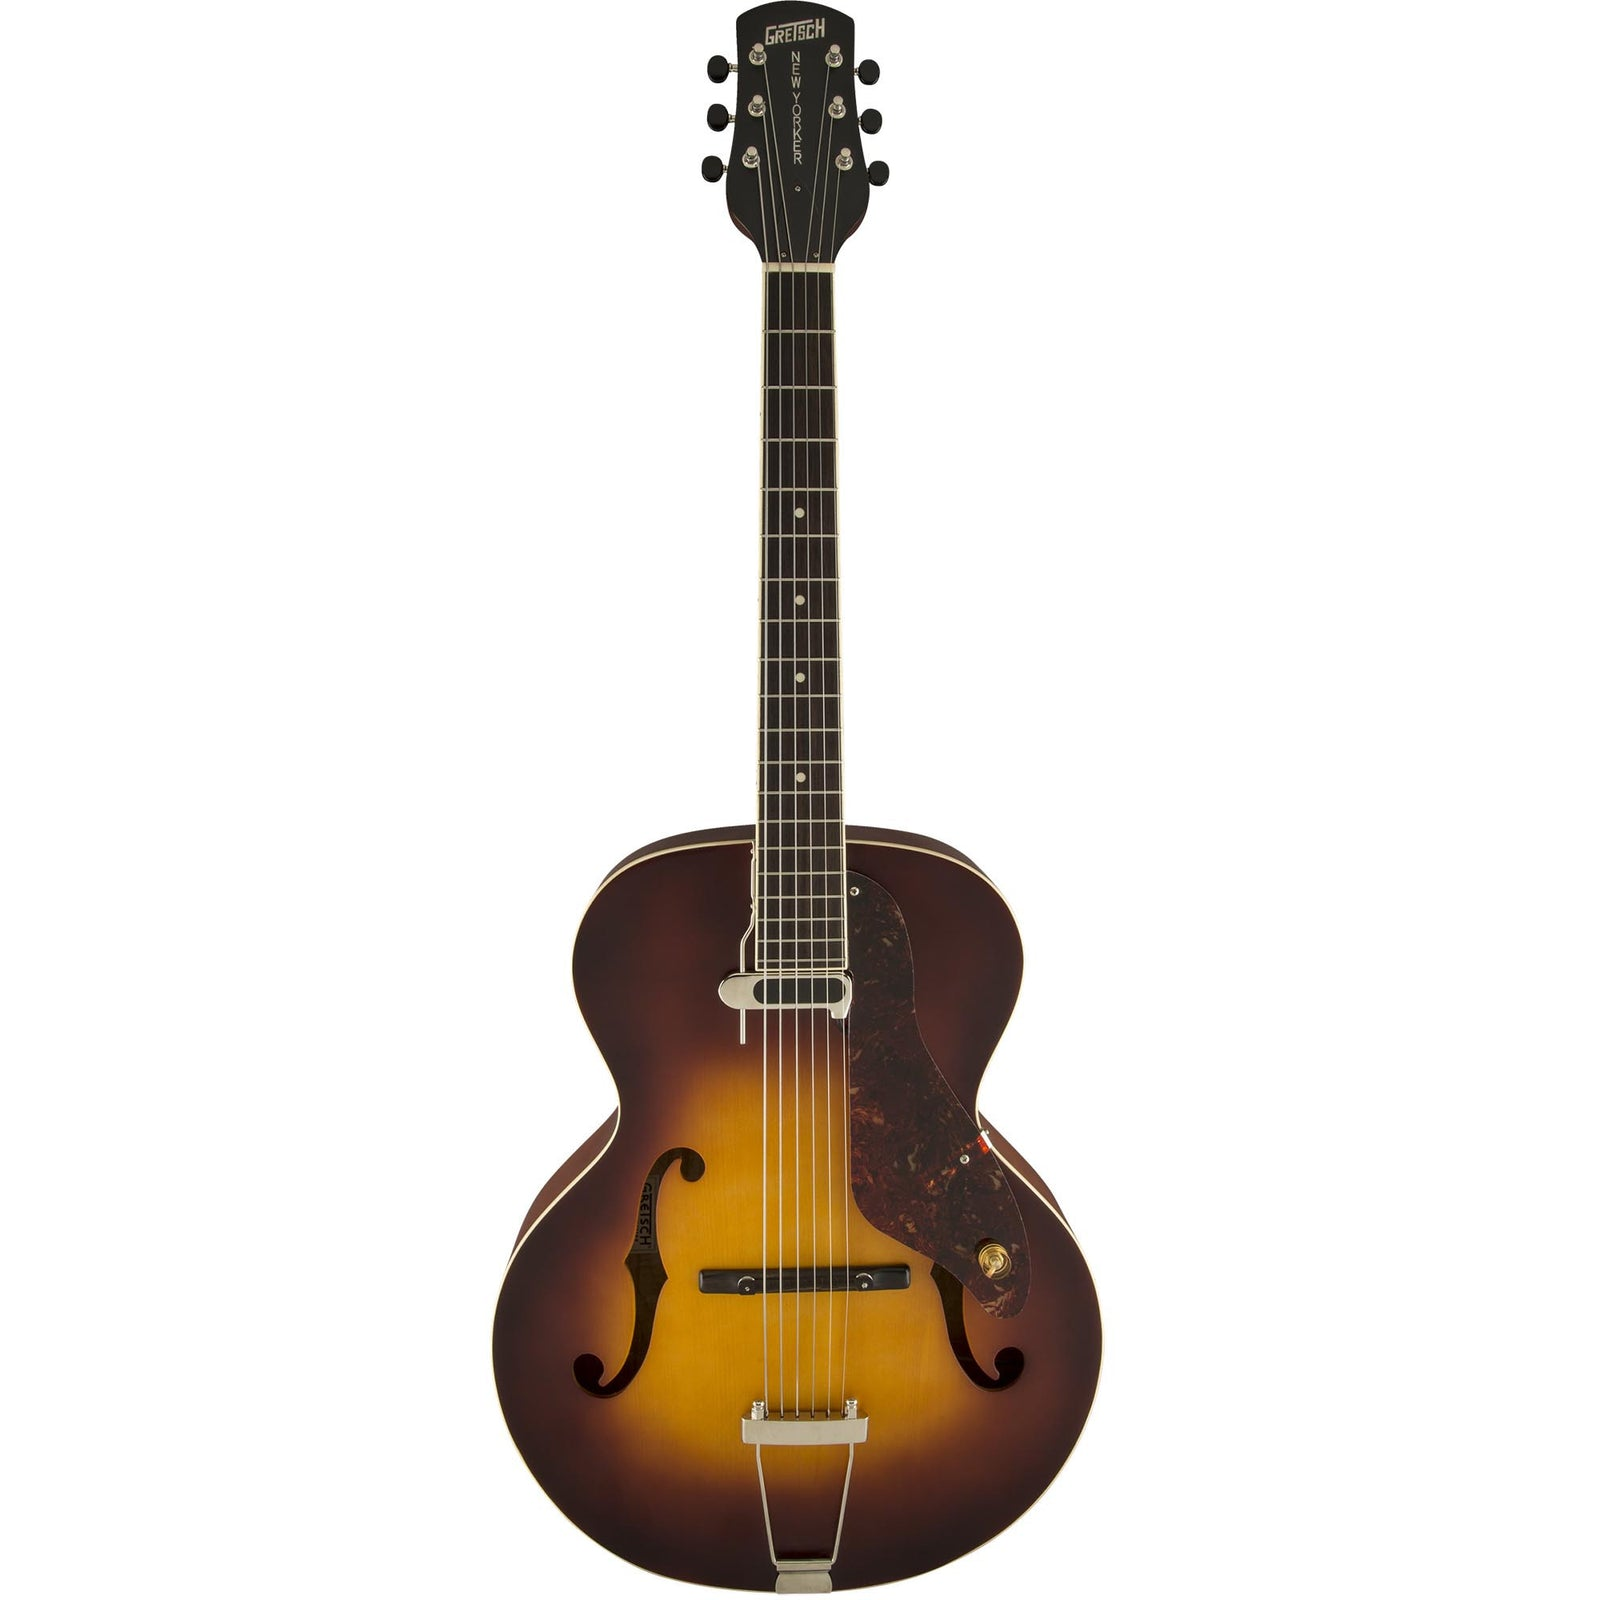 Gretsch G9555 New Yorker Archtop With Pickup, Antique Burst